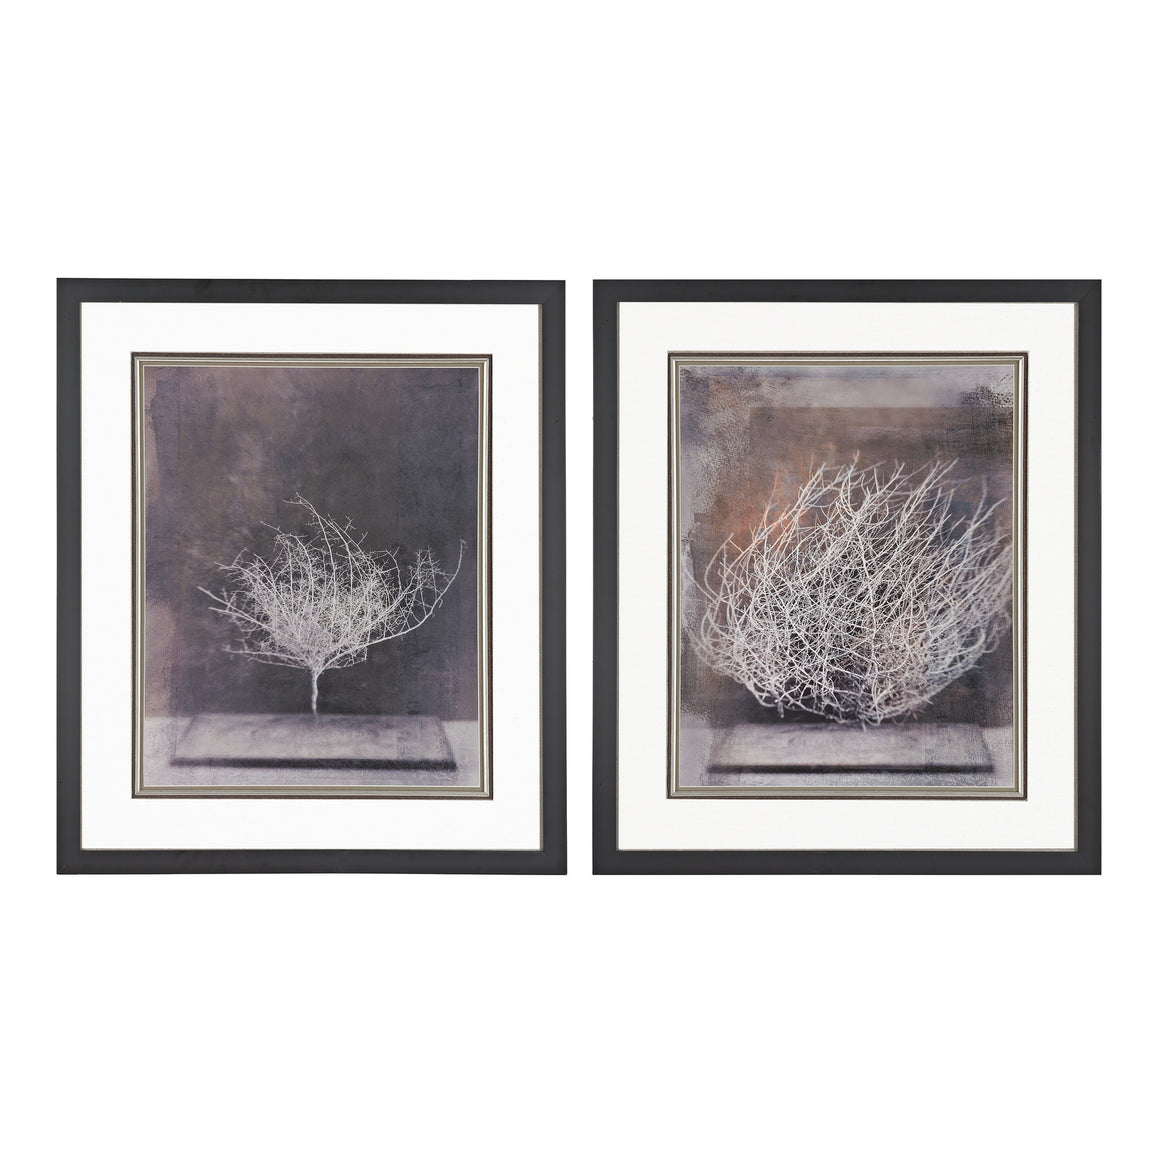 Desert Form V, VI - Print Under Glass  by Sterling